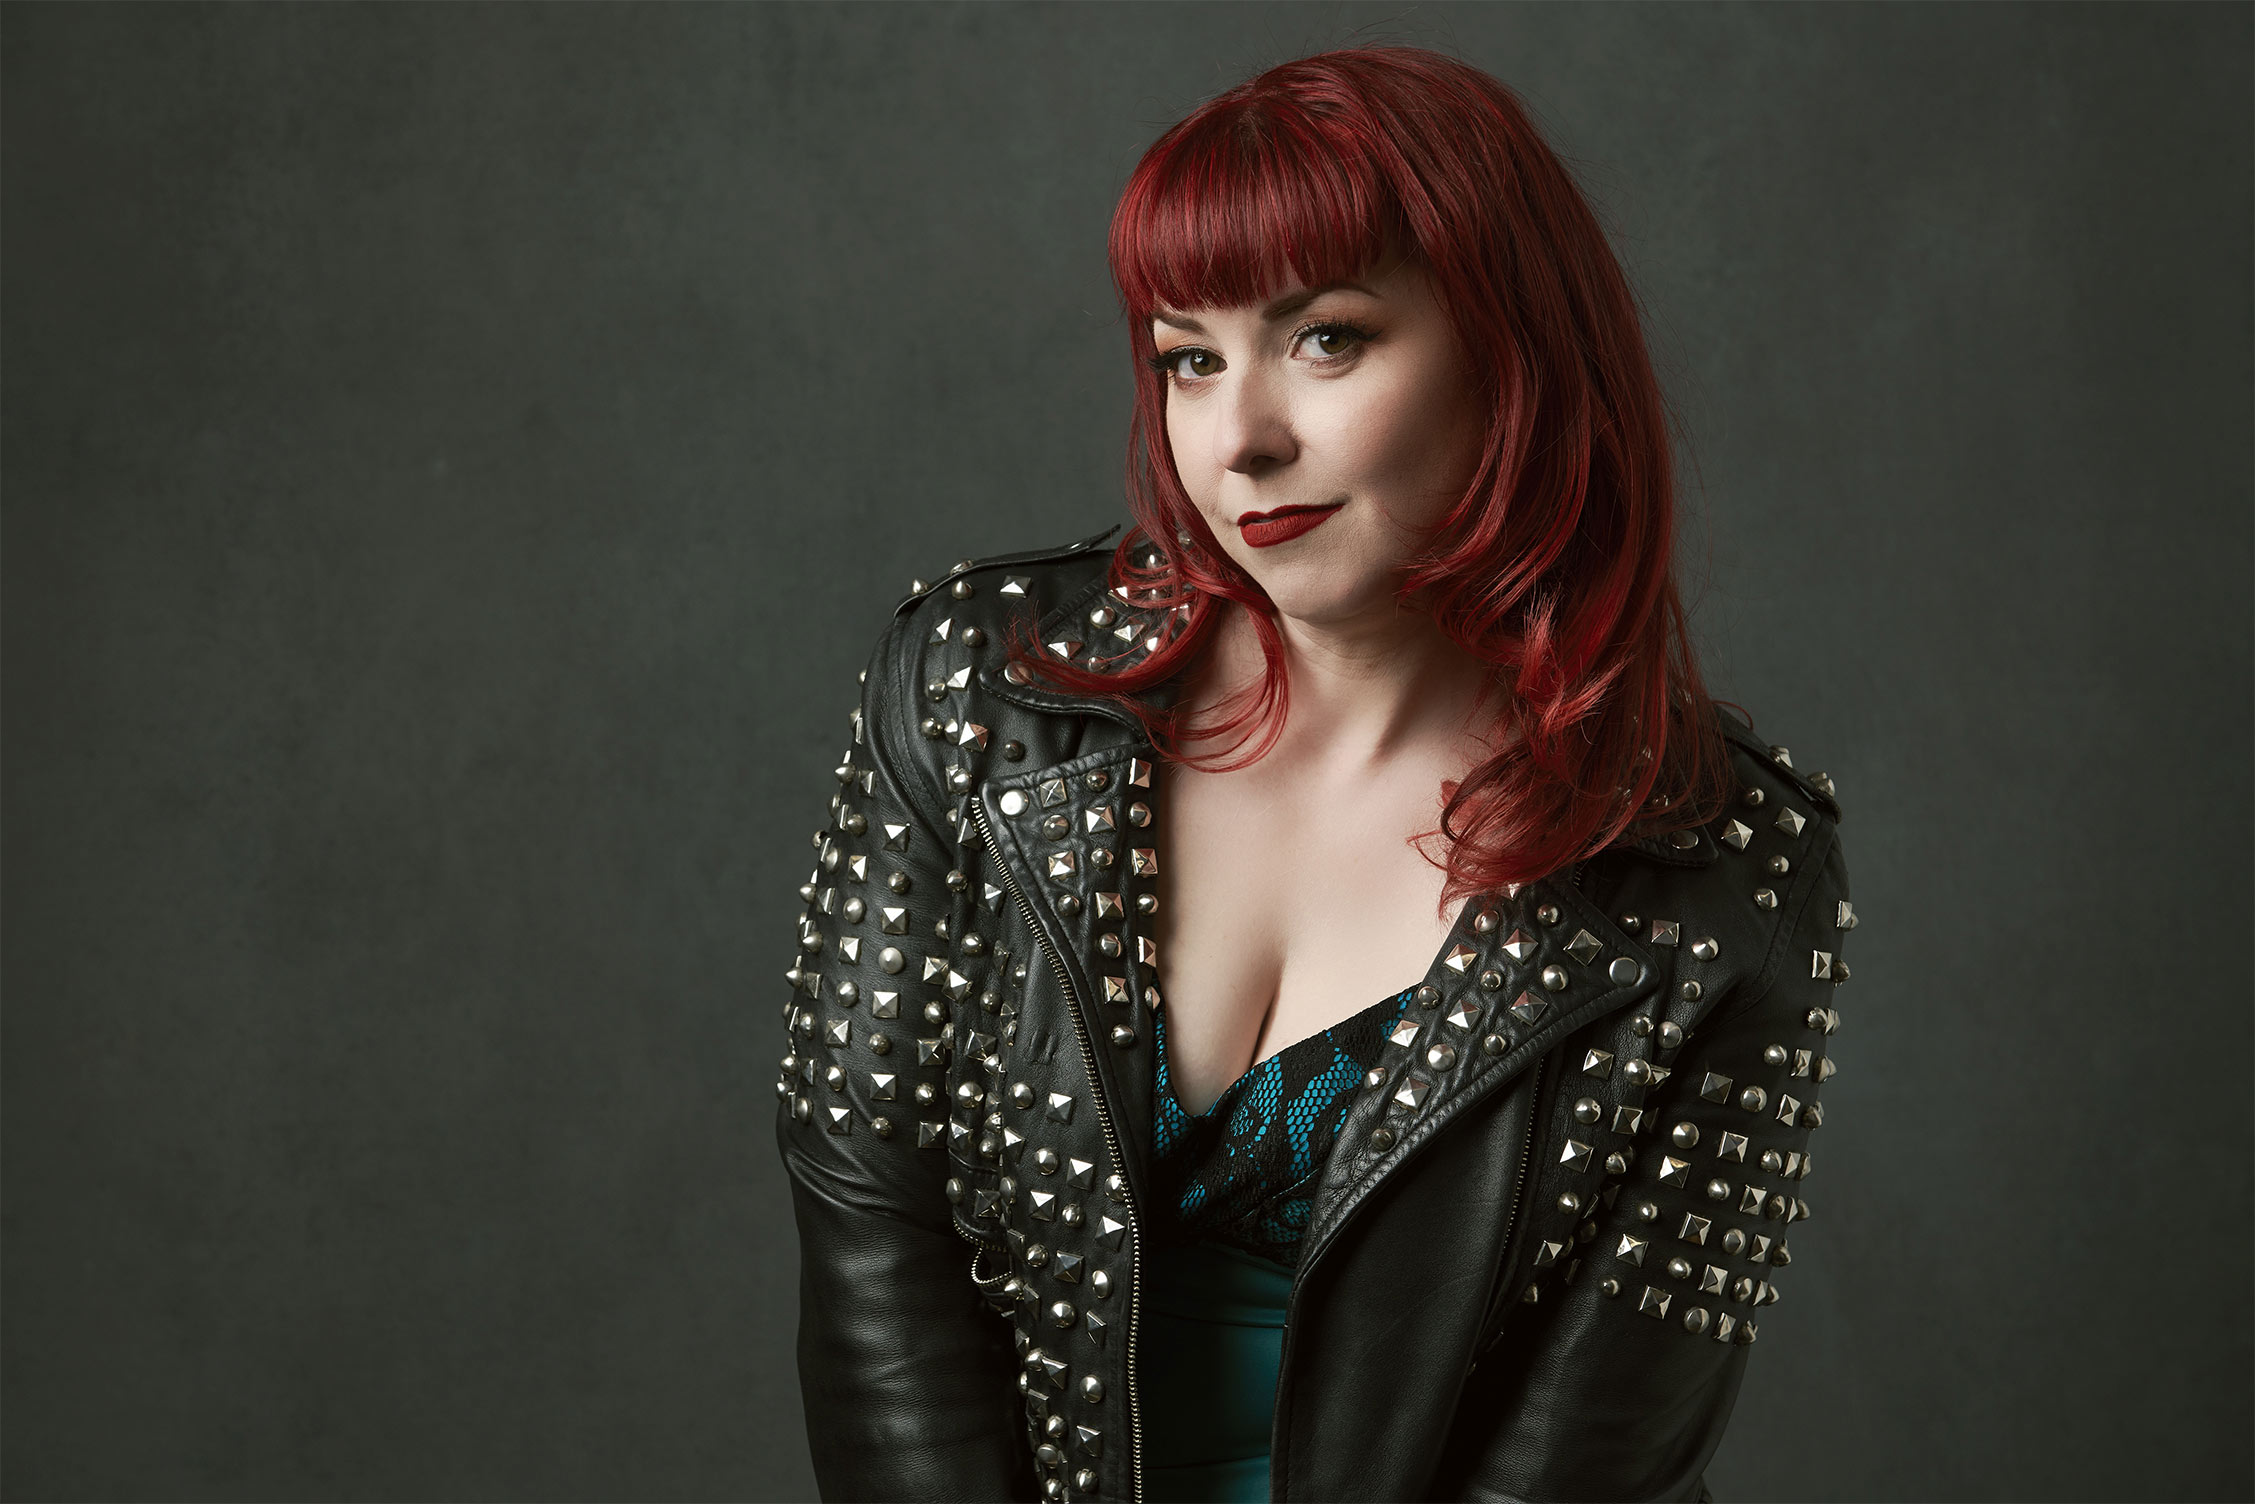 Joanna04529-redhead-woman-in-leather-jacket.jpg